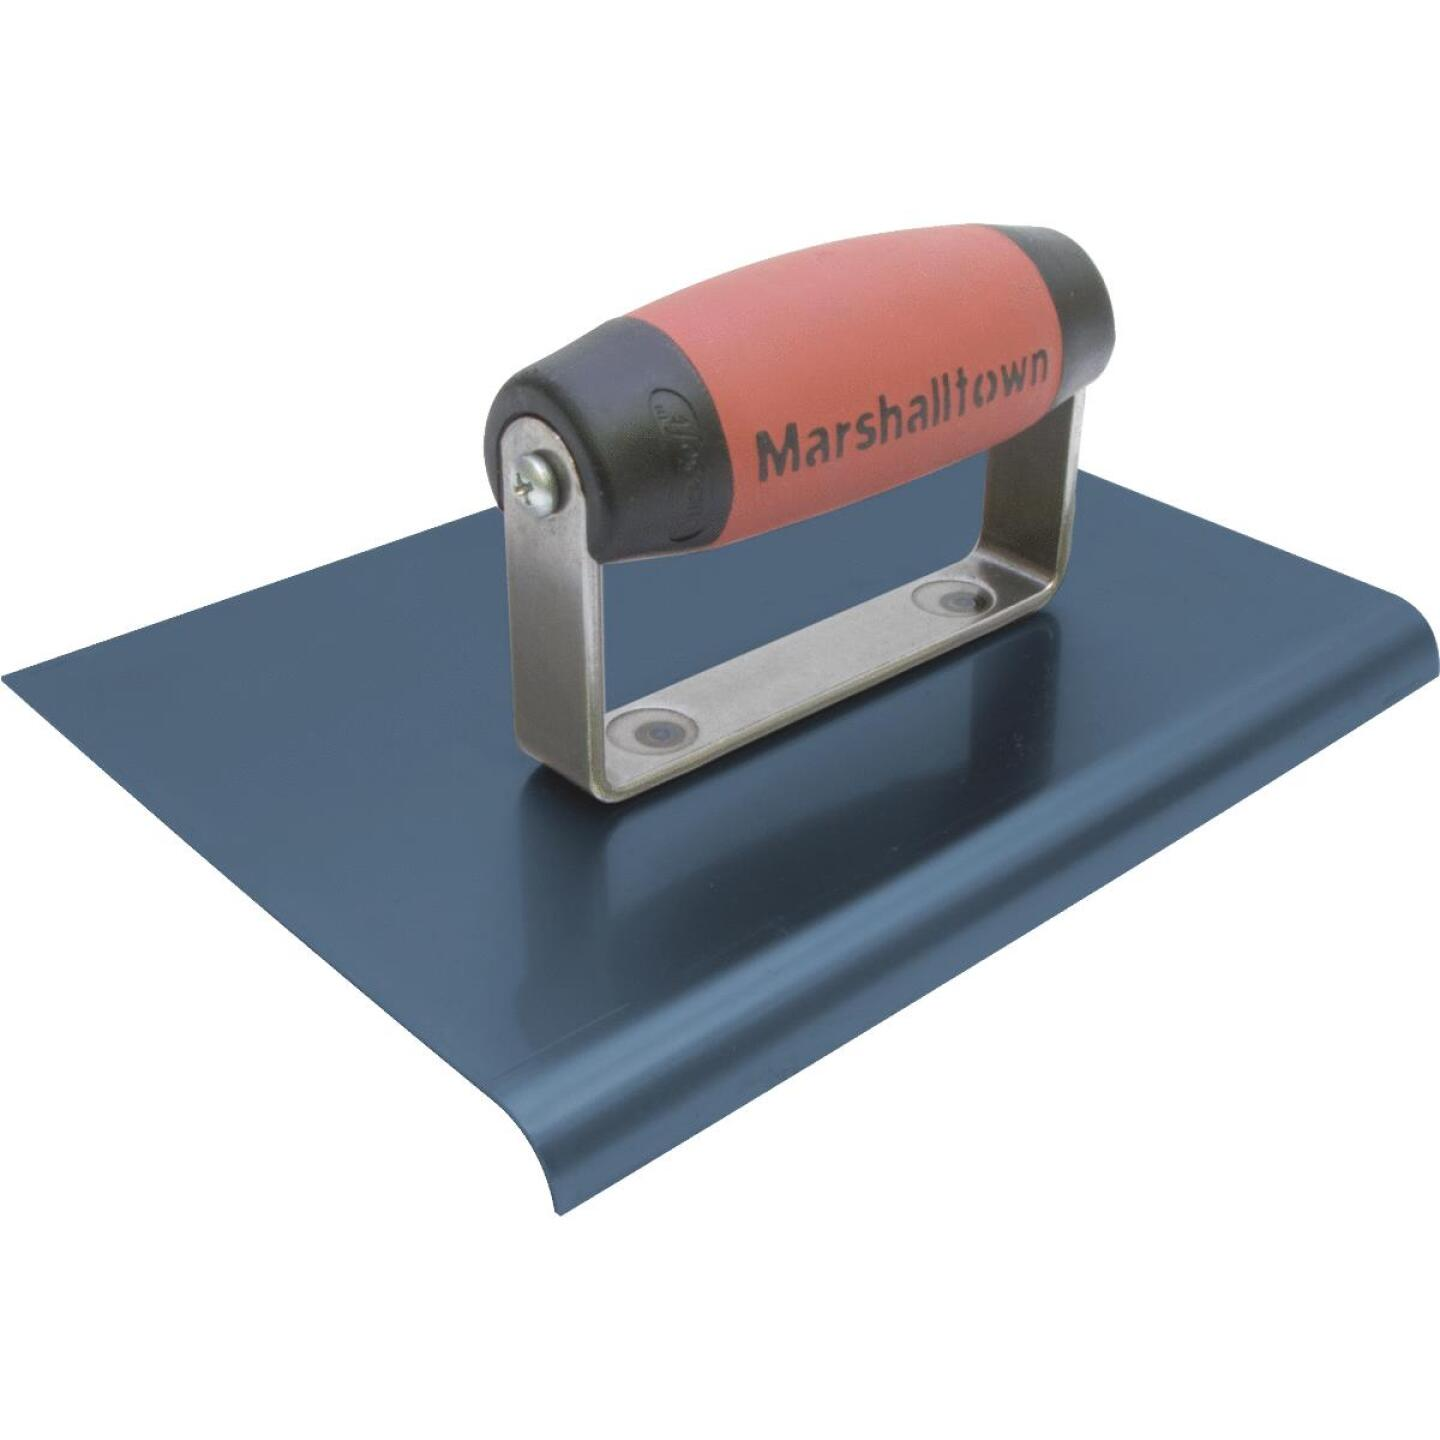 Marshalltown Blue Steel 9 In. x 6 In. Straight End Edger Image 1